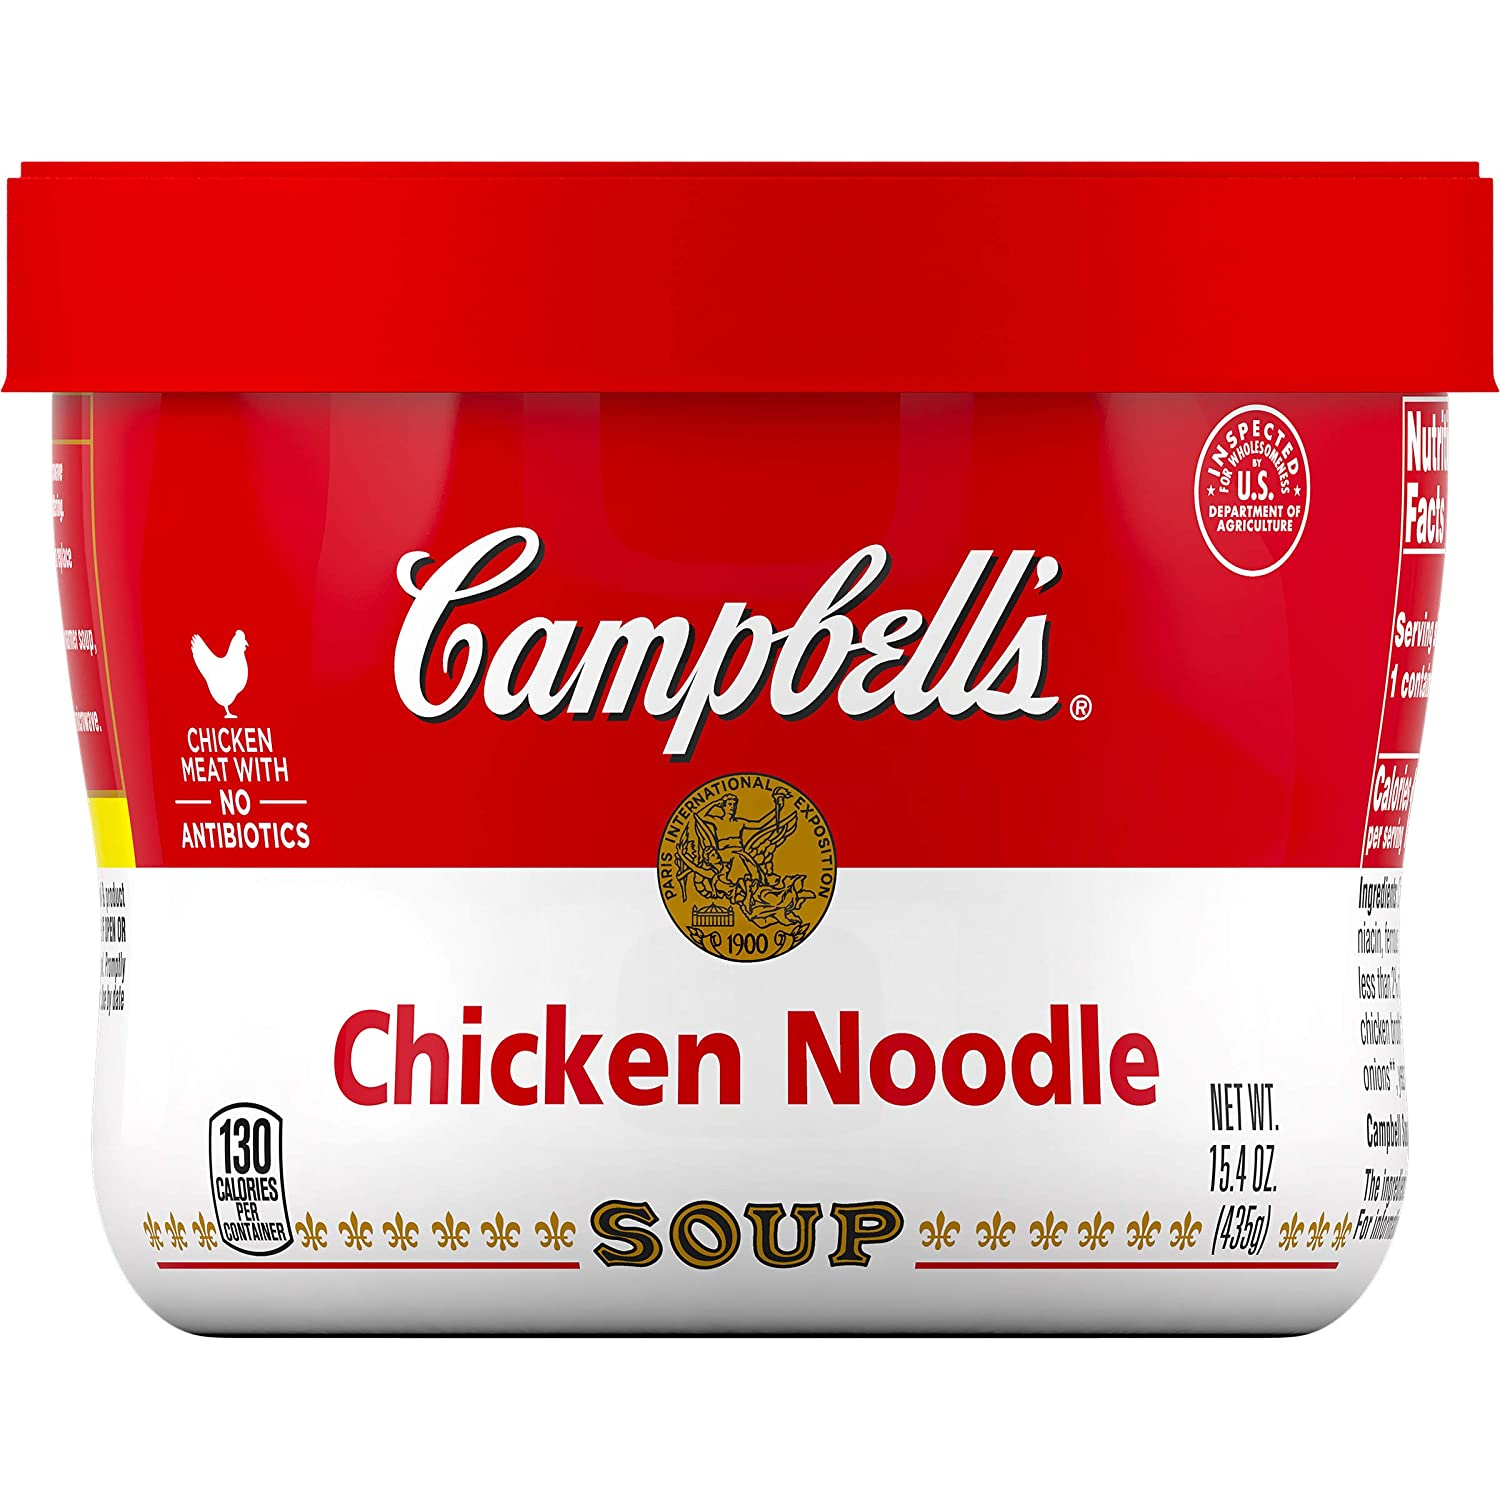 Campbell's Chicken Noodle Soup Microwavable Bowl, 15.4 oz.